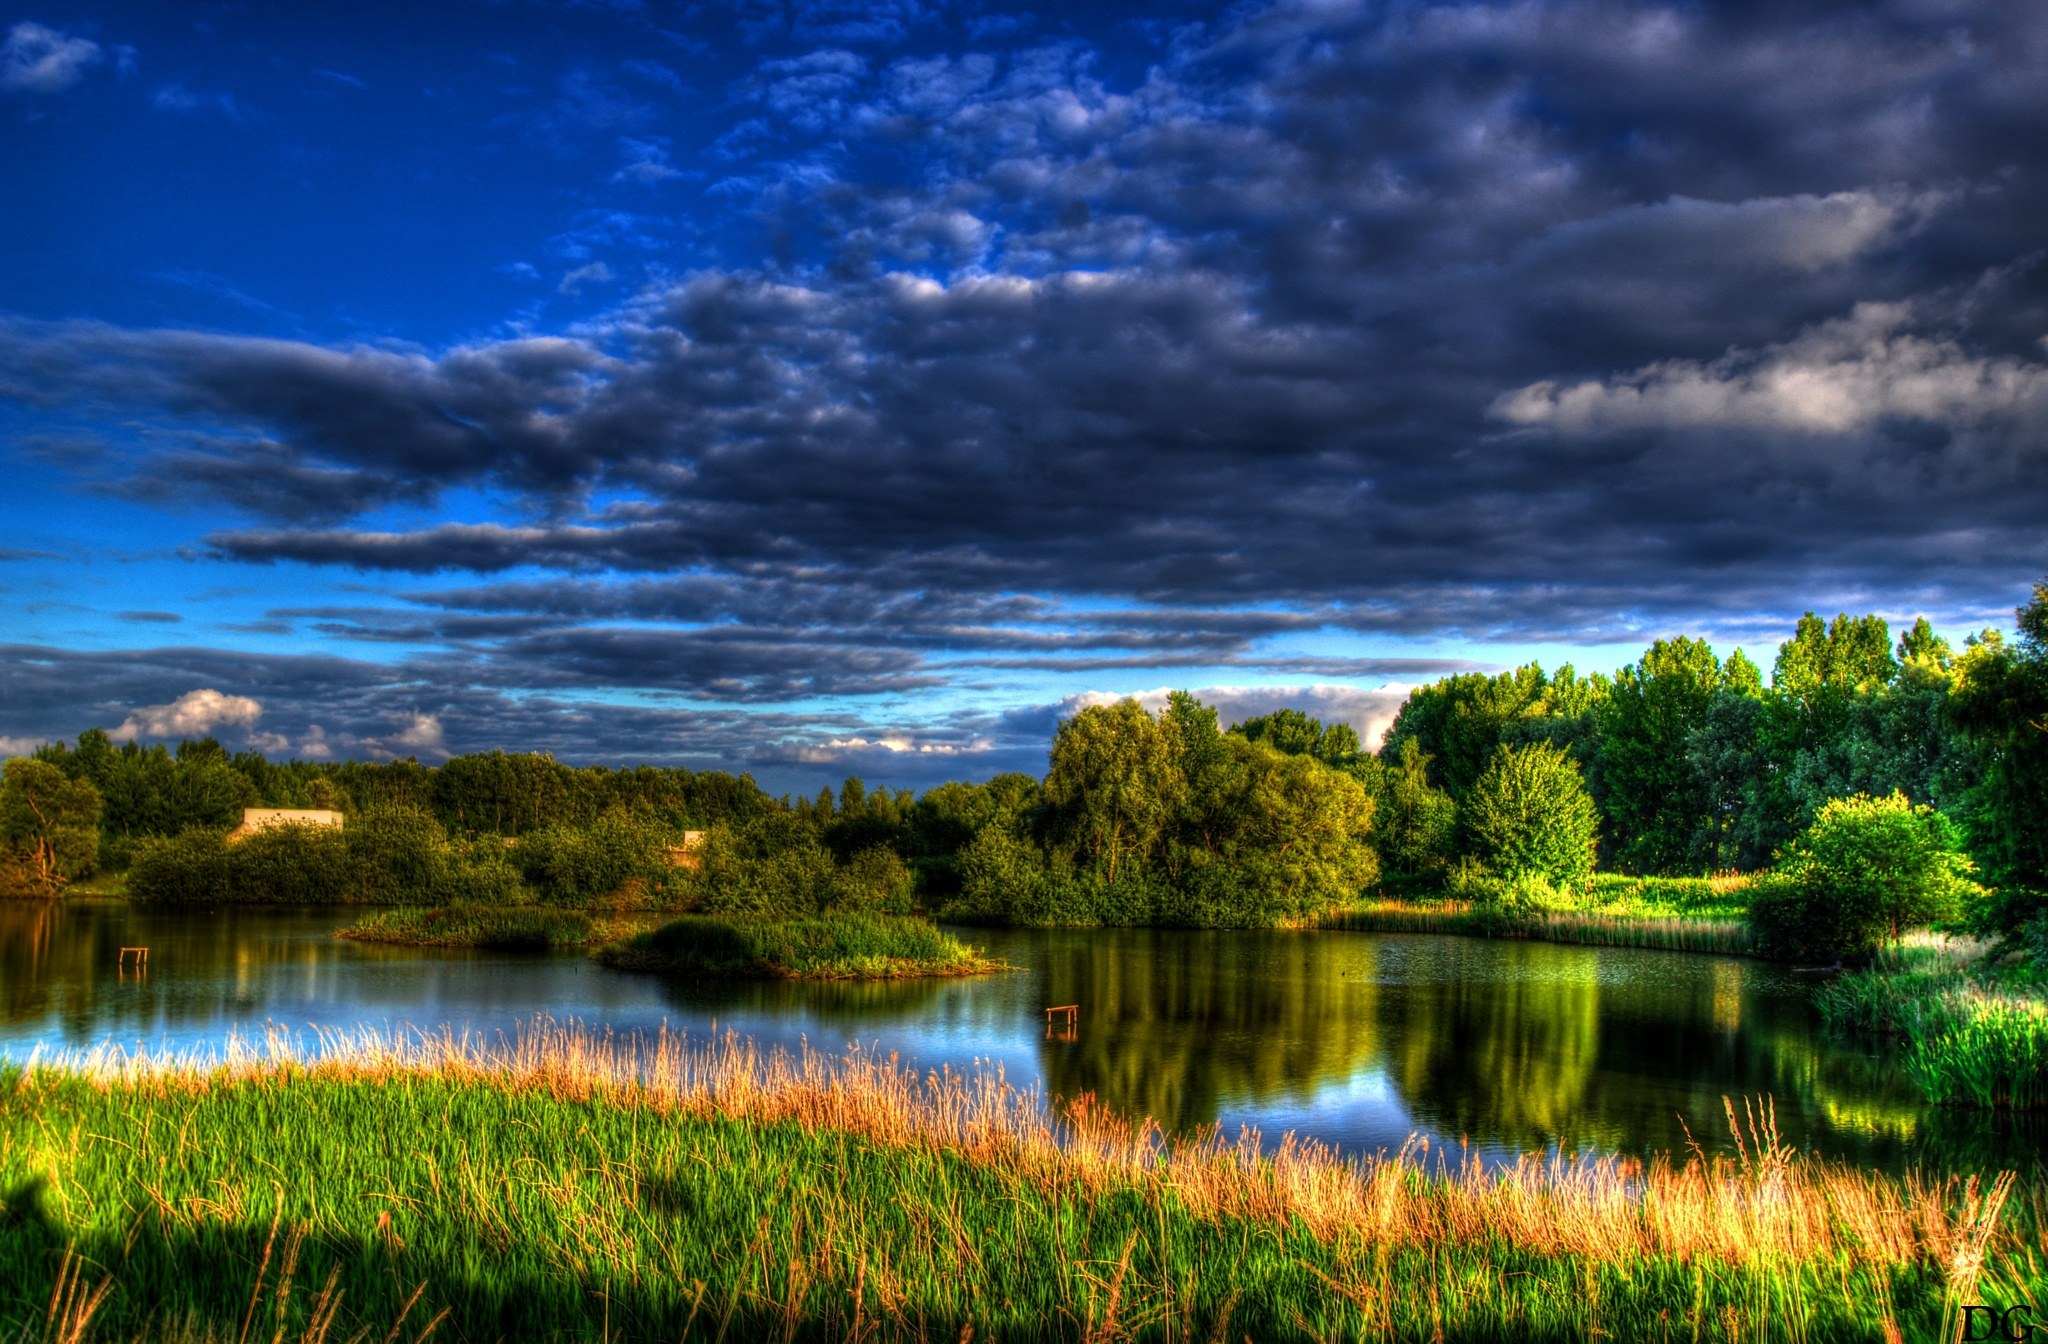 Pond. by Dirk Gonthier